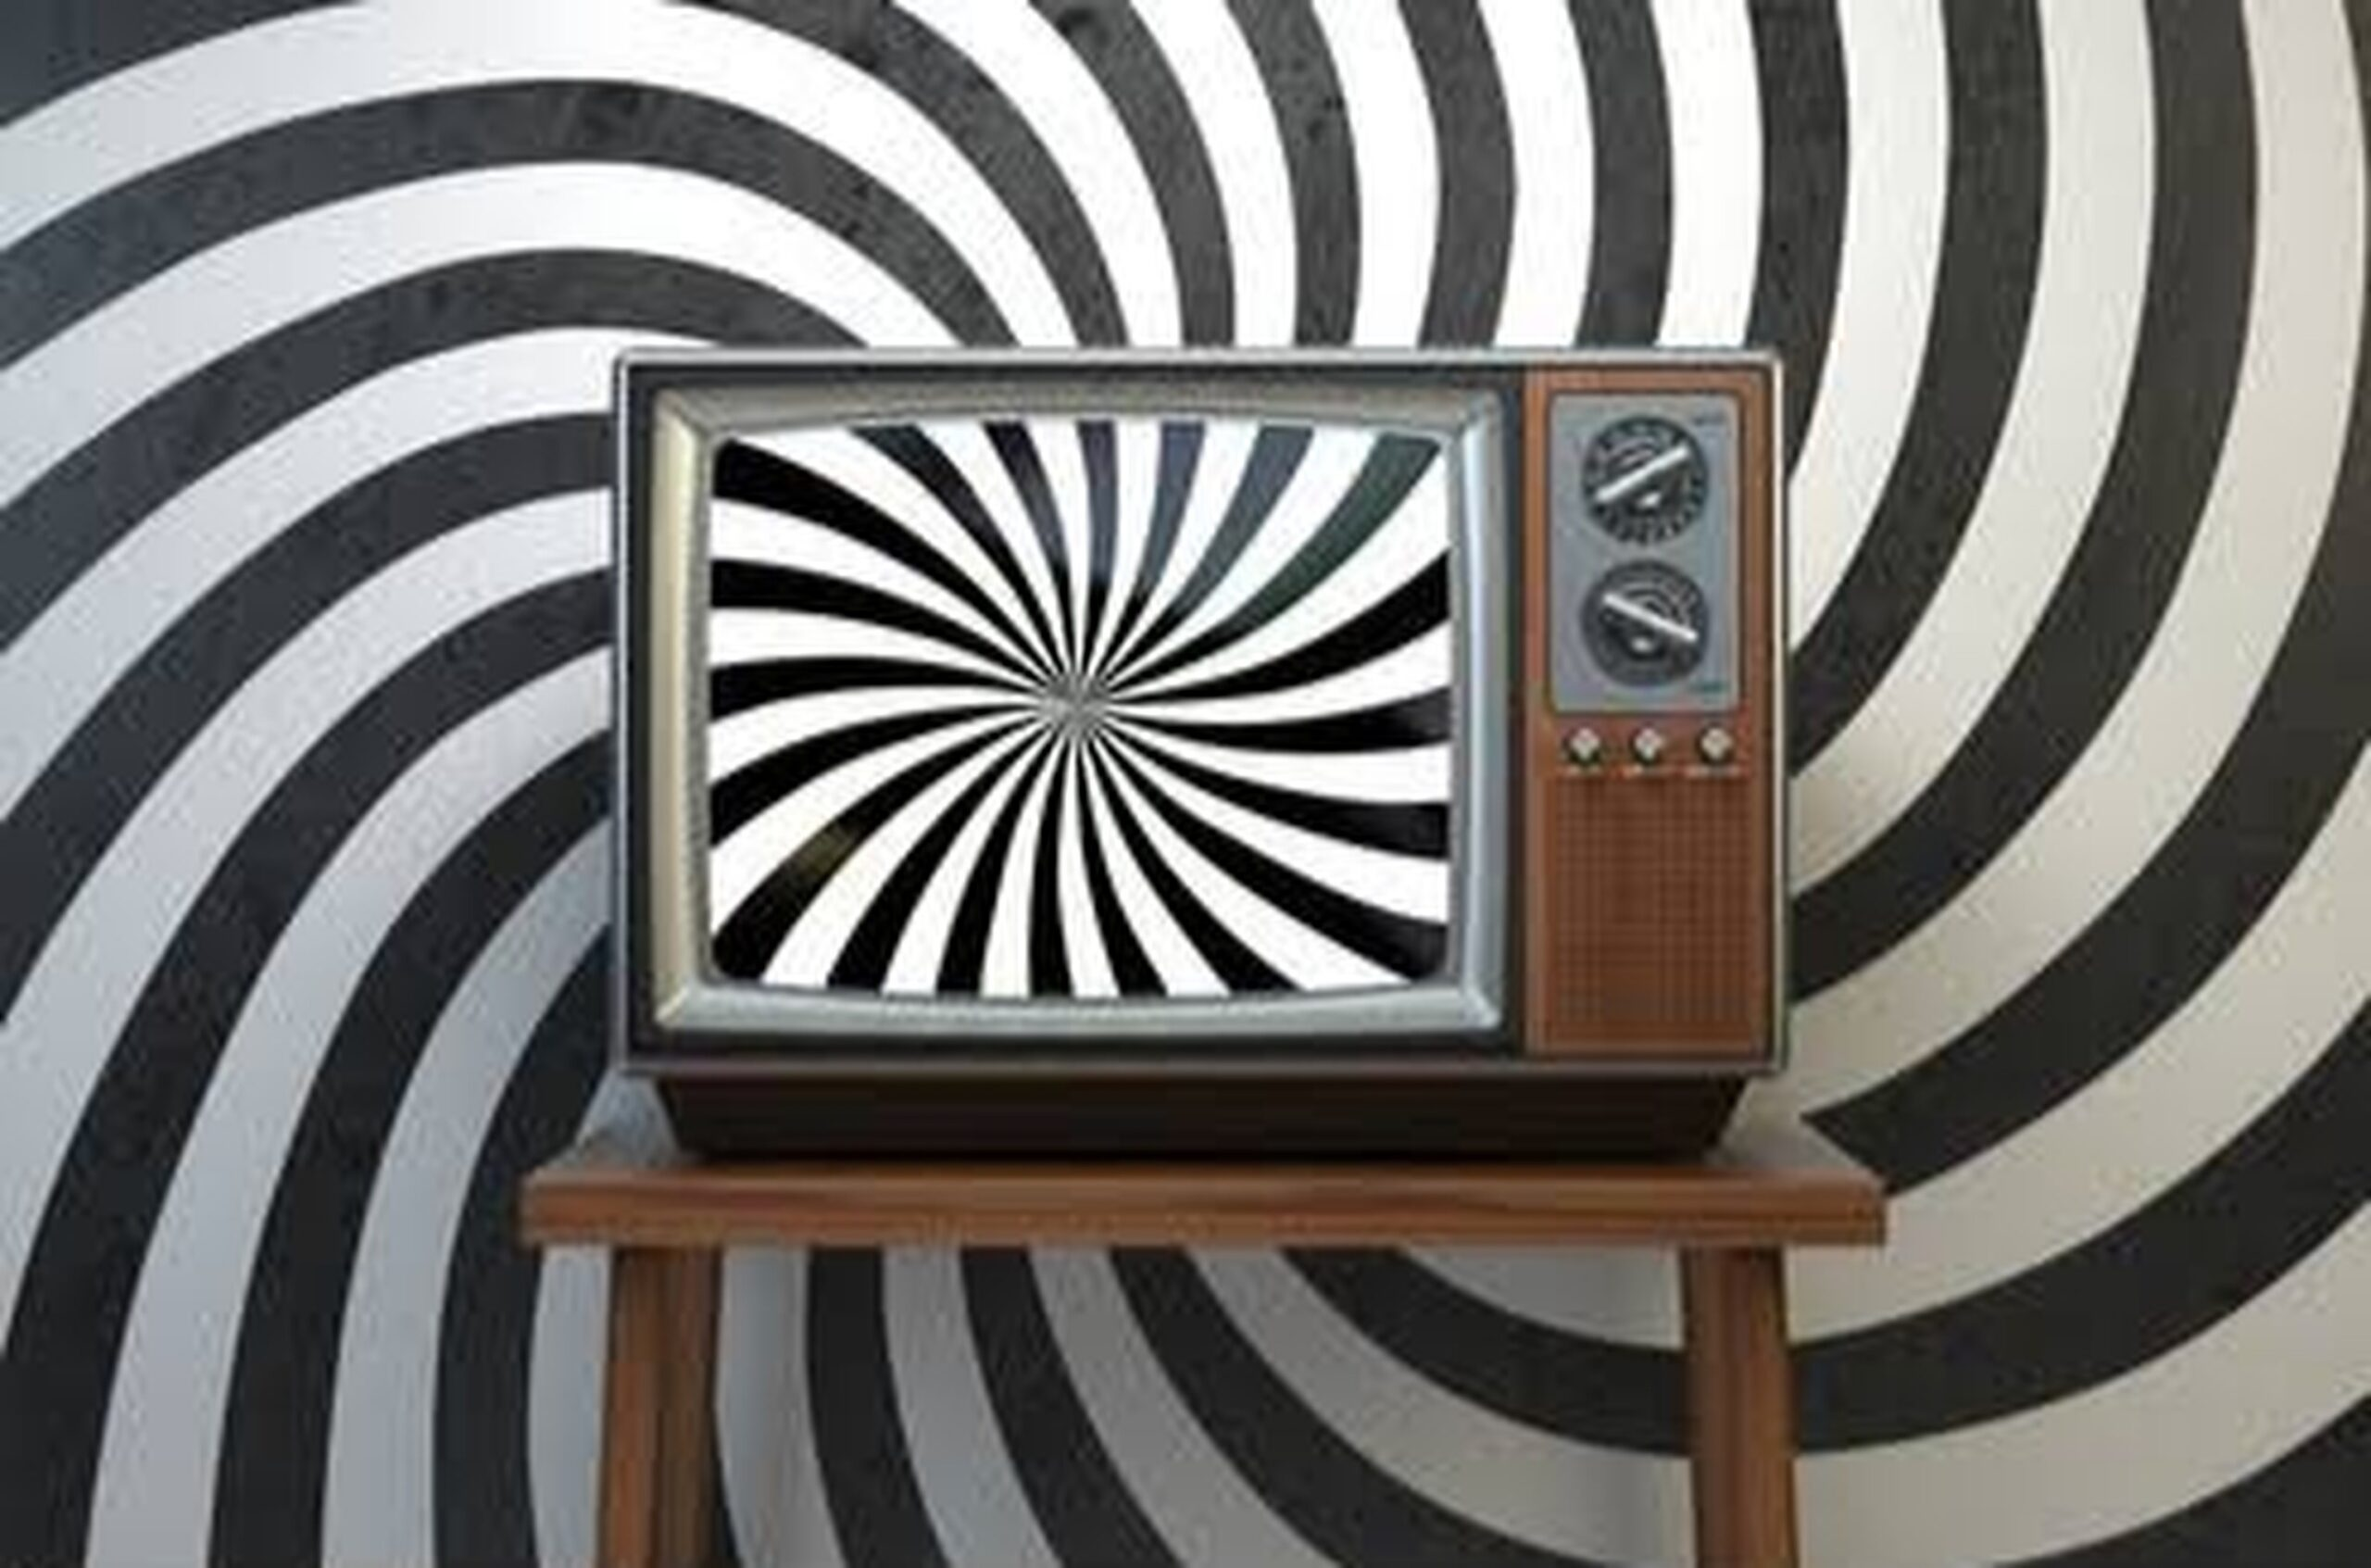 Dangers Of The Media And Te(Lie)Vision: How Media And News Effect Our Views And Perspective